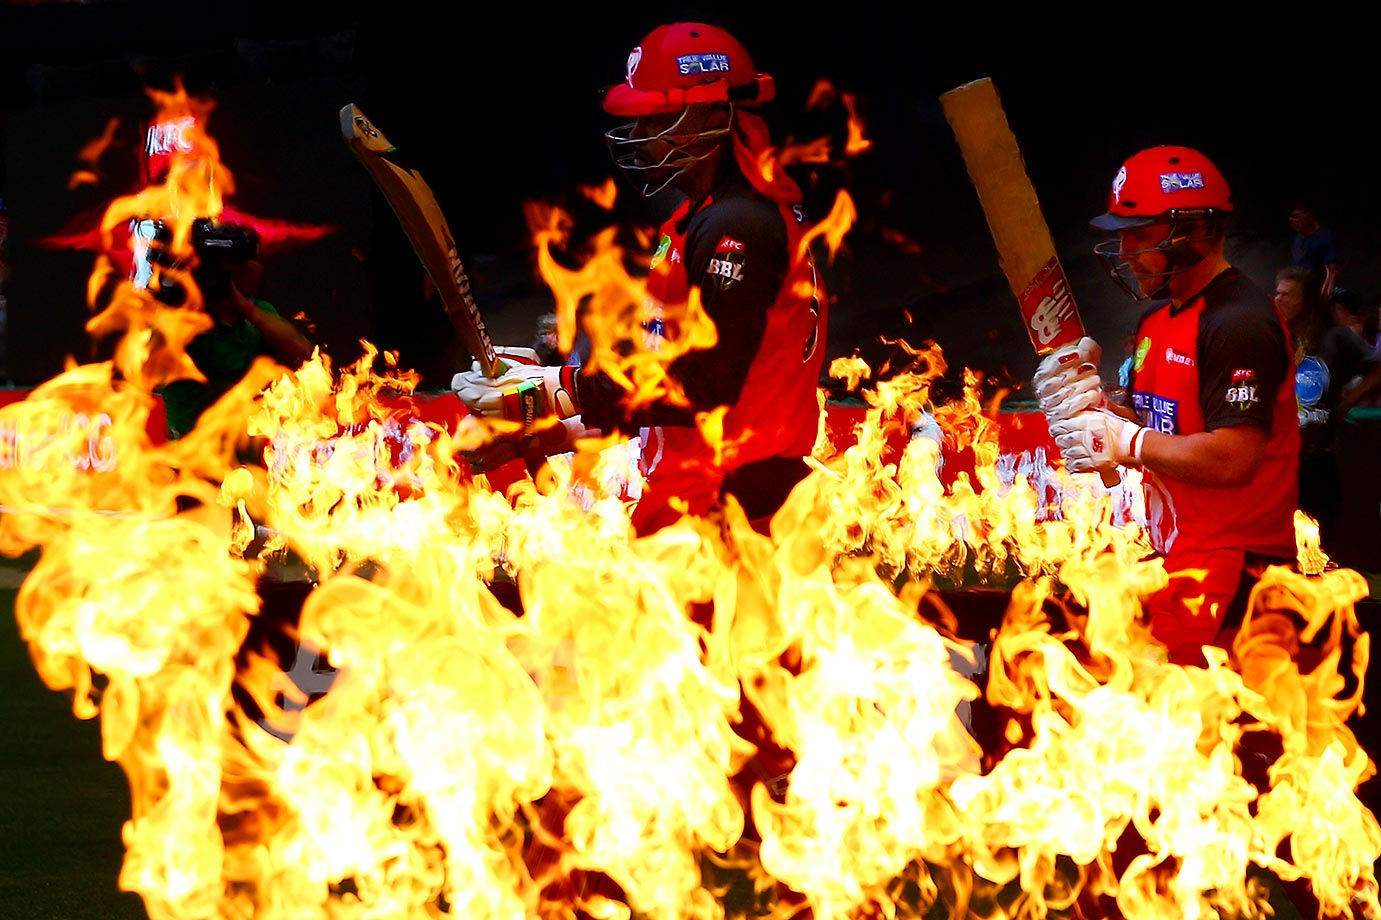 Chris Gayle and Aaron Finch of the Renegades walk through flames to open the batting during the Big Bash League match between the Melbourne Renegades and the Perth Scorchers.